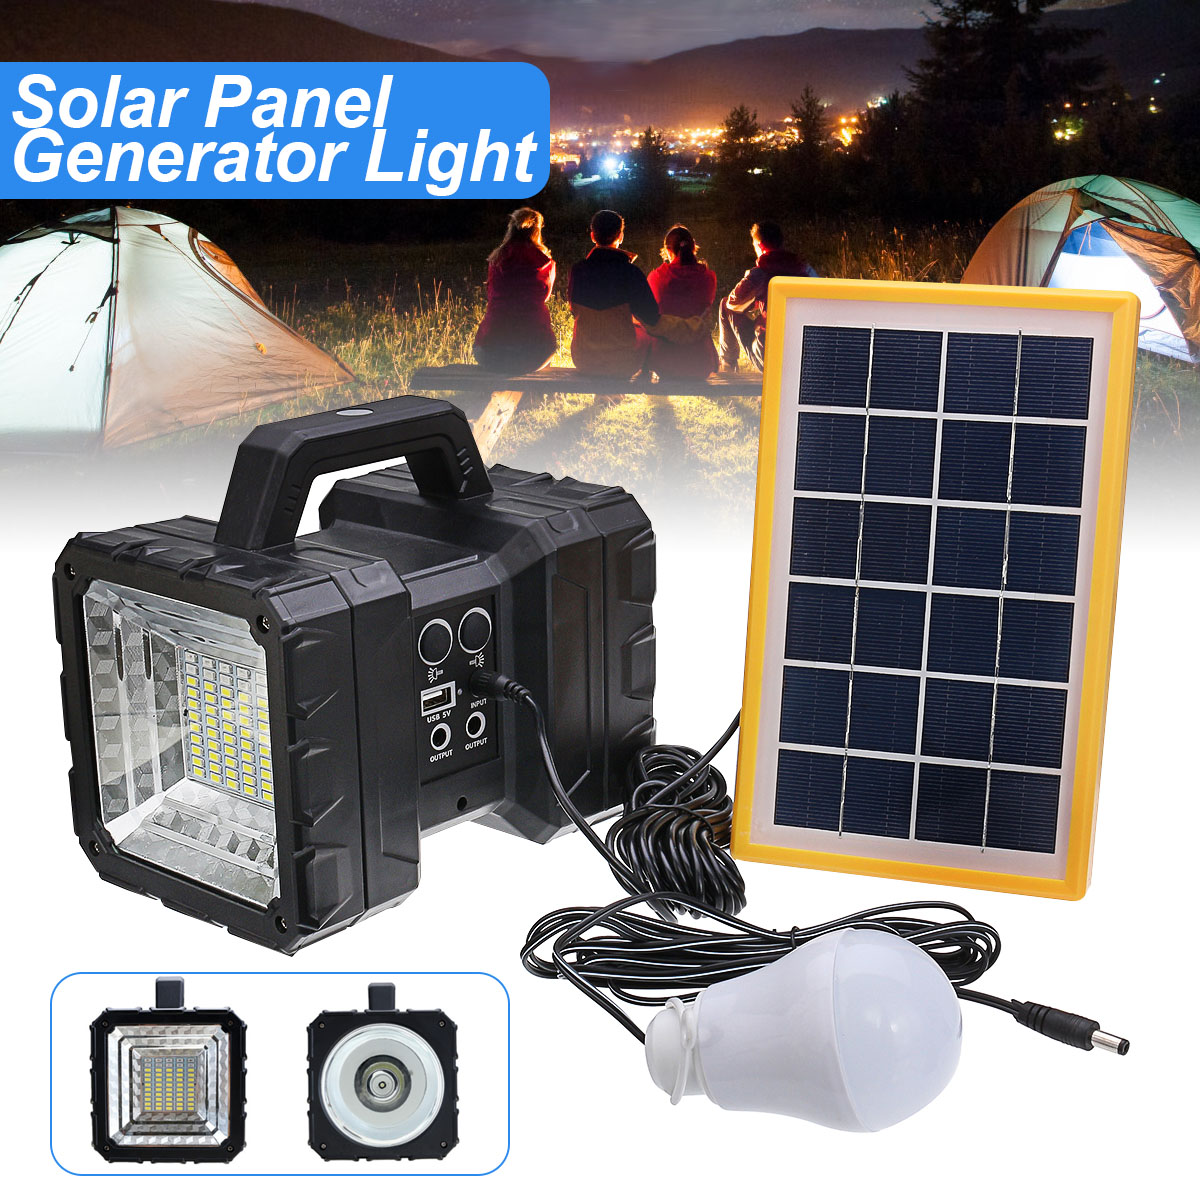 Portable Solar Panels Charging Generator Power System Outdoor Power Bank Home Outdoor LED Lighting System Camping Lantern new portable solar panels charging generator power system home outdoor lighting with blub gift portable power generation